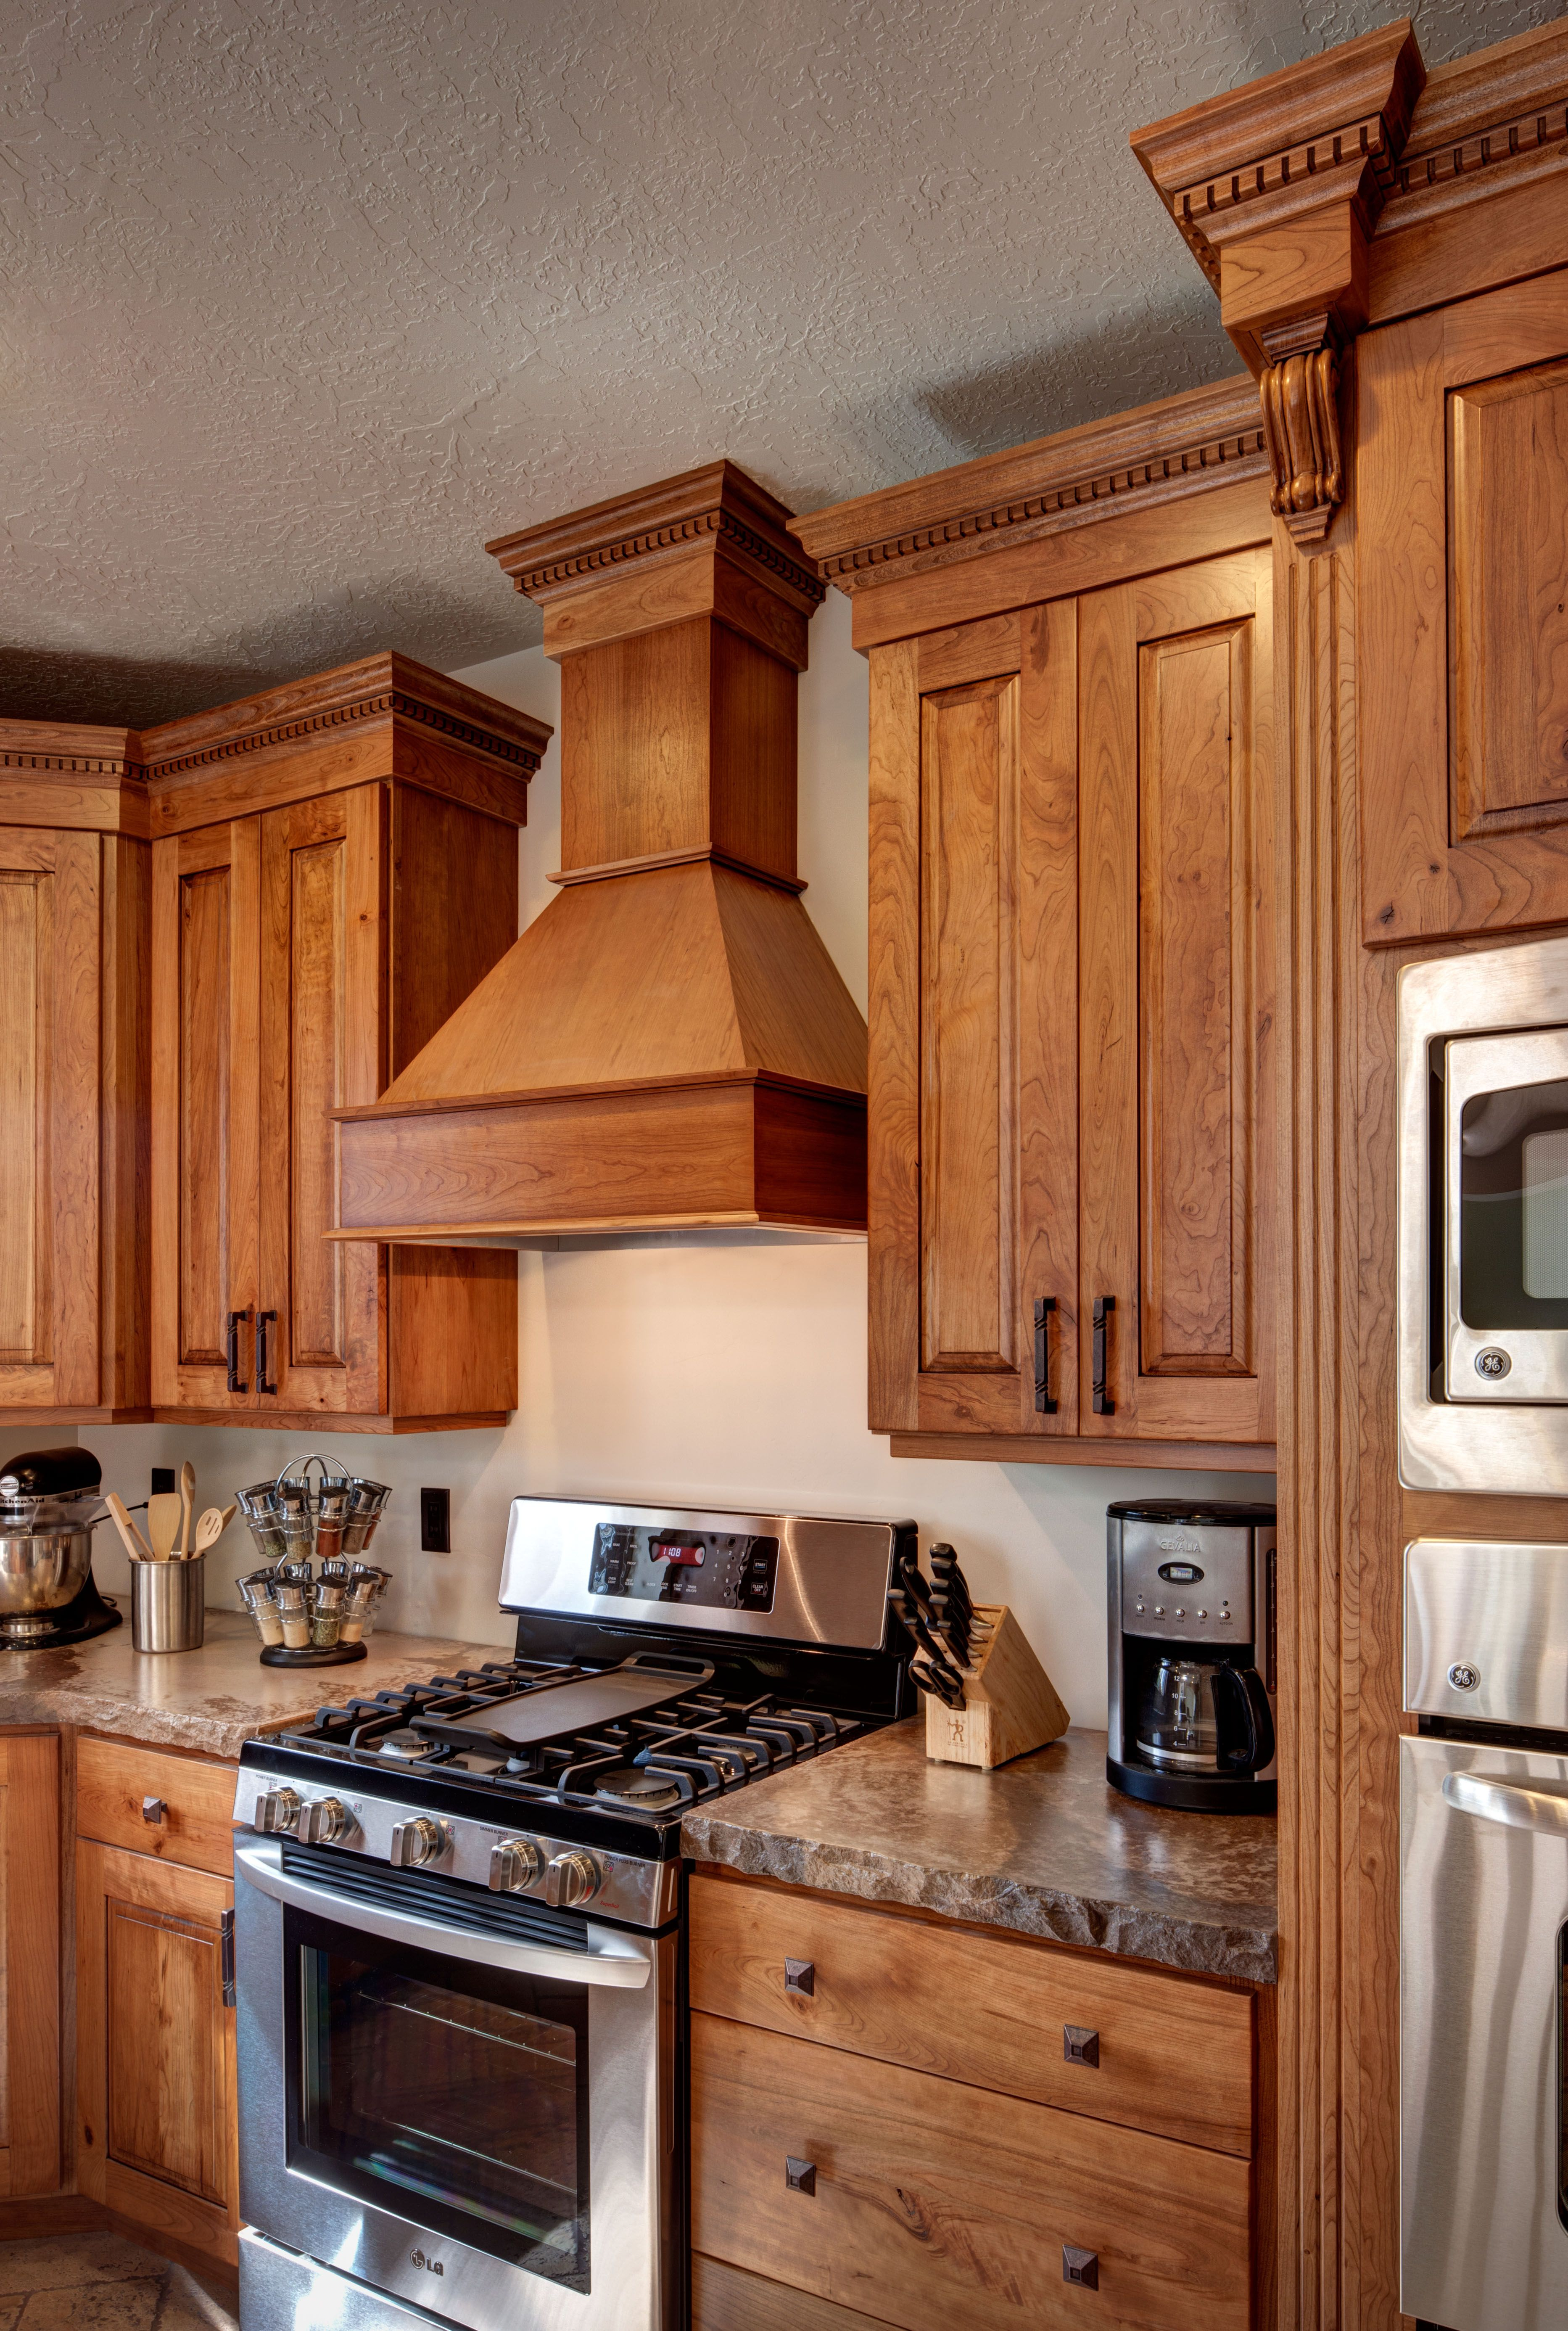 Pin By Crown Cabinets On Knotty Cherry Cabinetry Hickory Kitchen Hickory Kitchen Cabinets Kitchen Cabinets Pictures